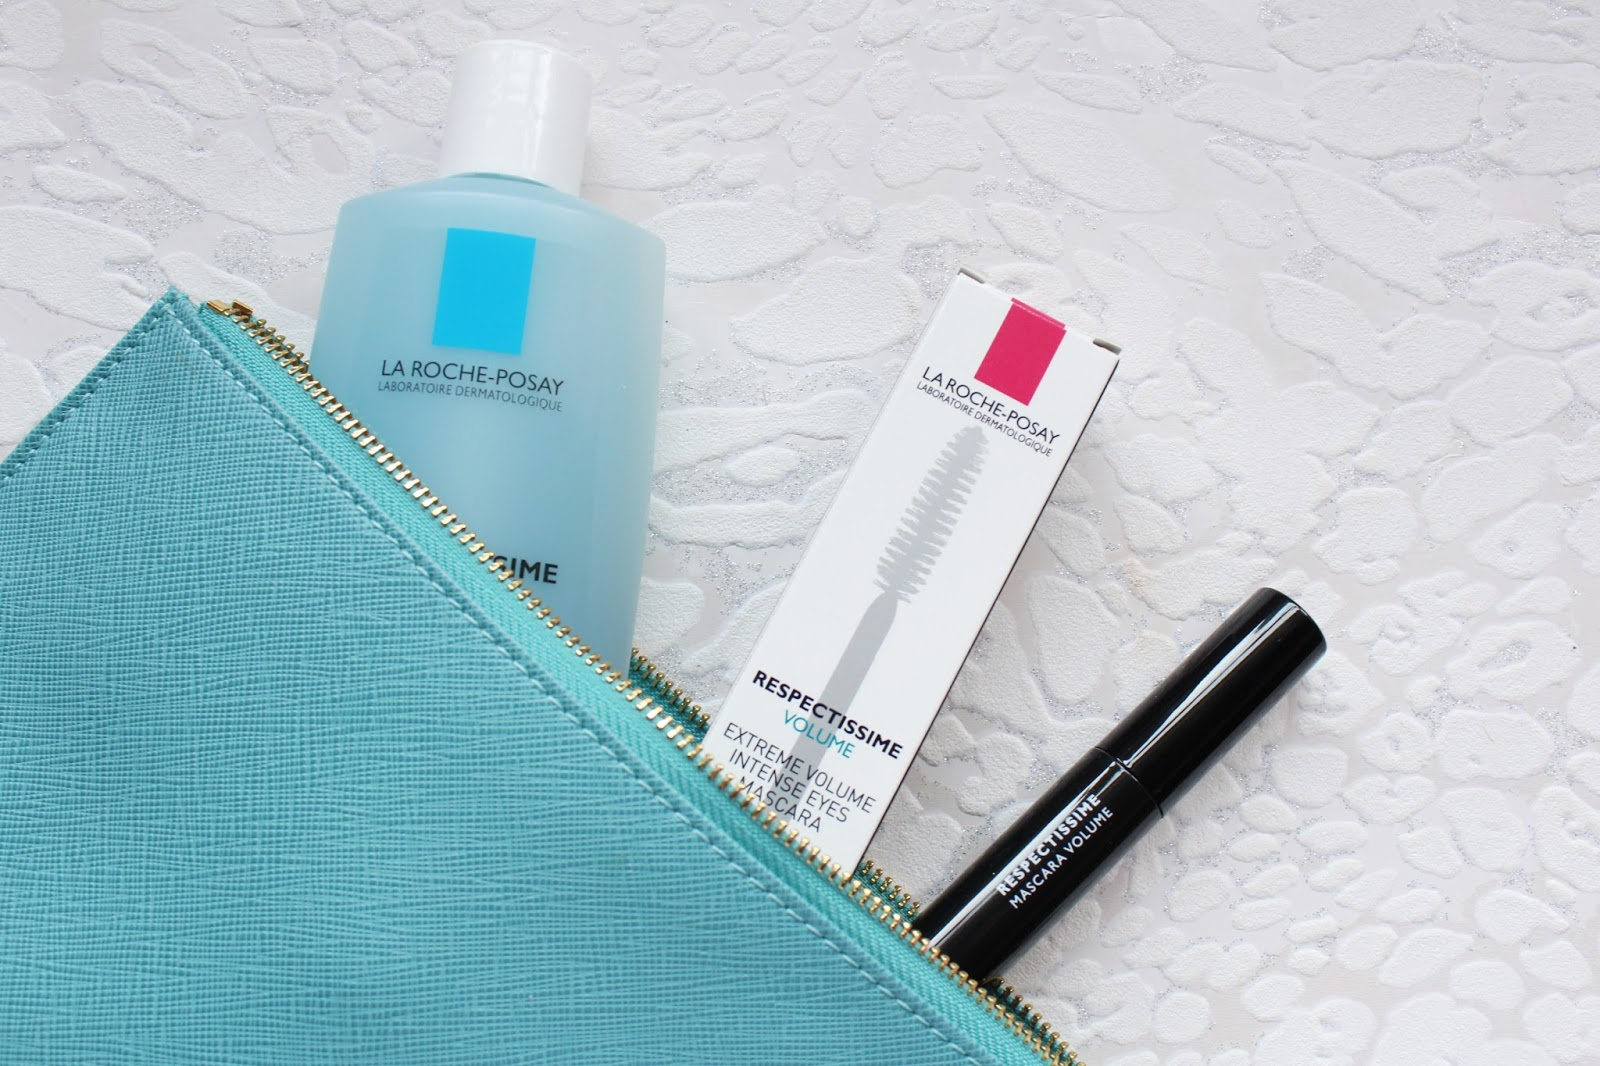 La Roche Posay Sensitive Eyes Makeup Remover & Mascara